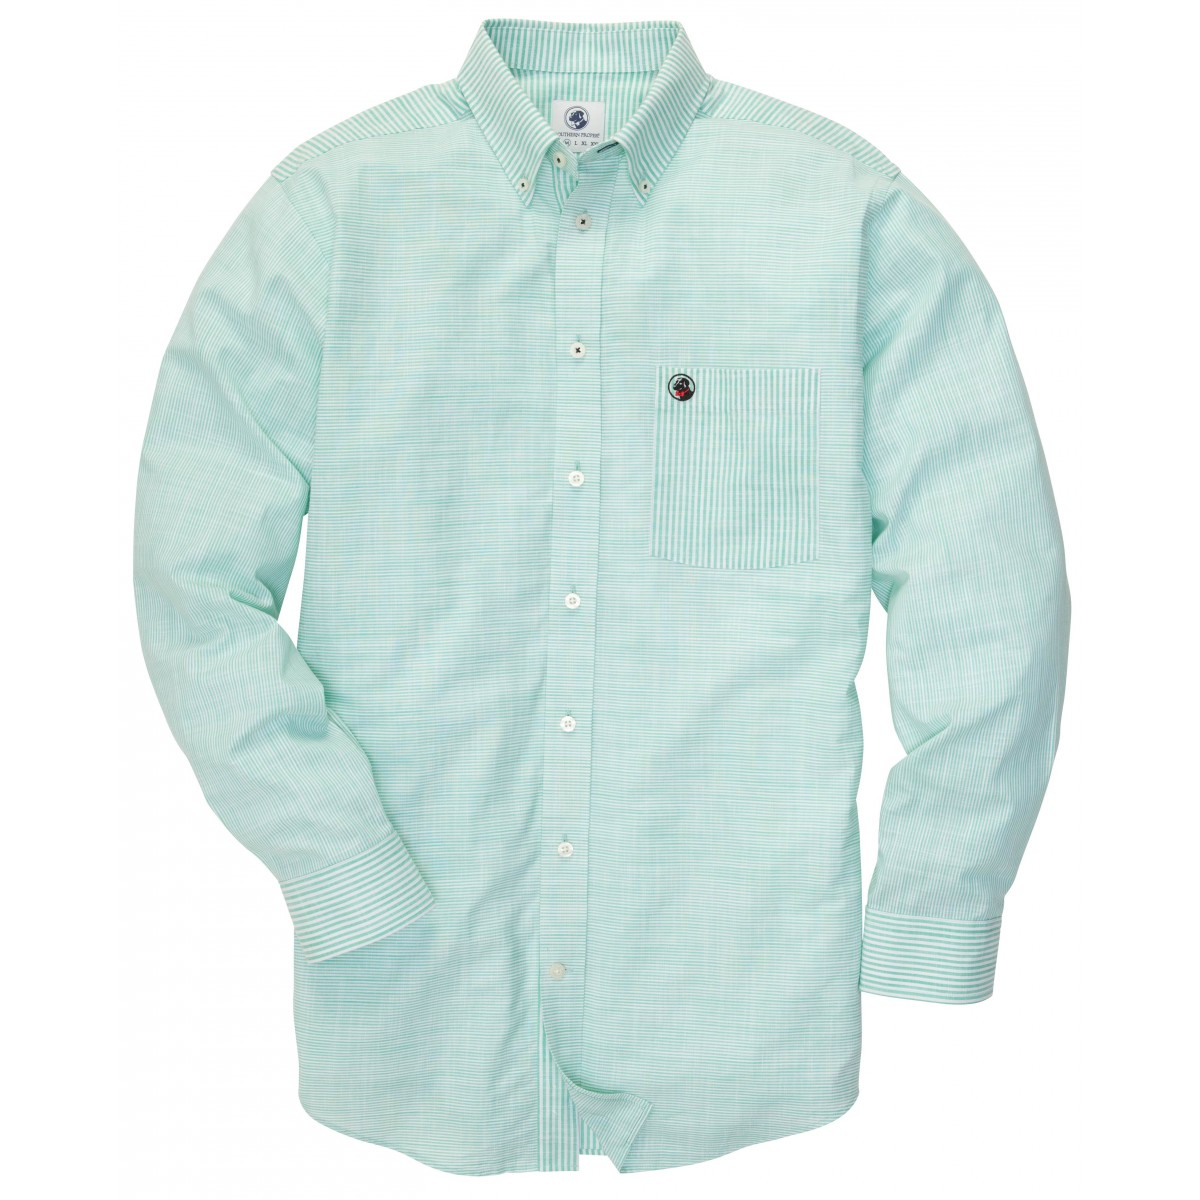 Weekend Shirt - Country Club/White Stripe